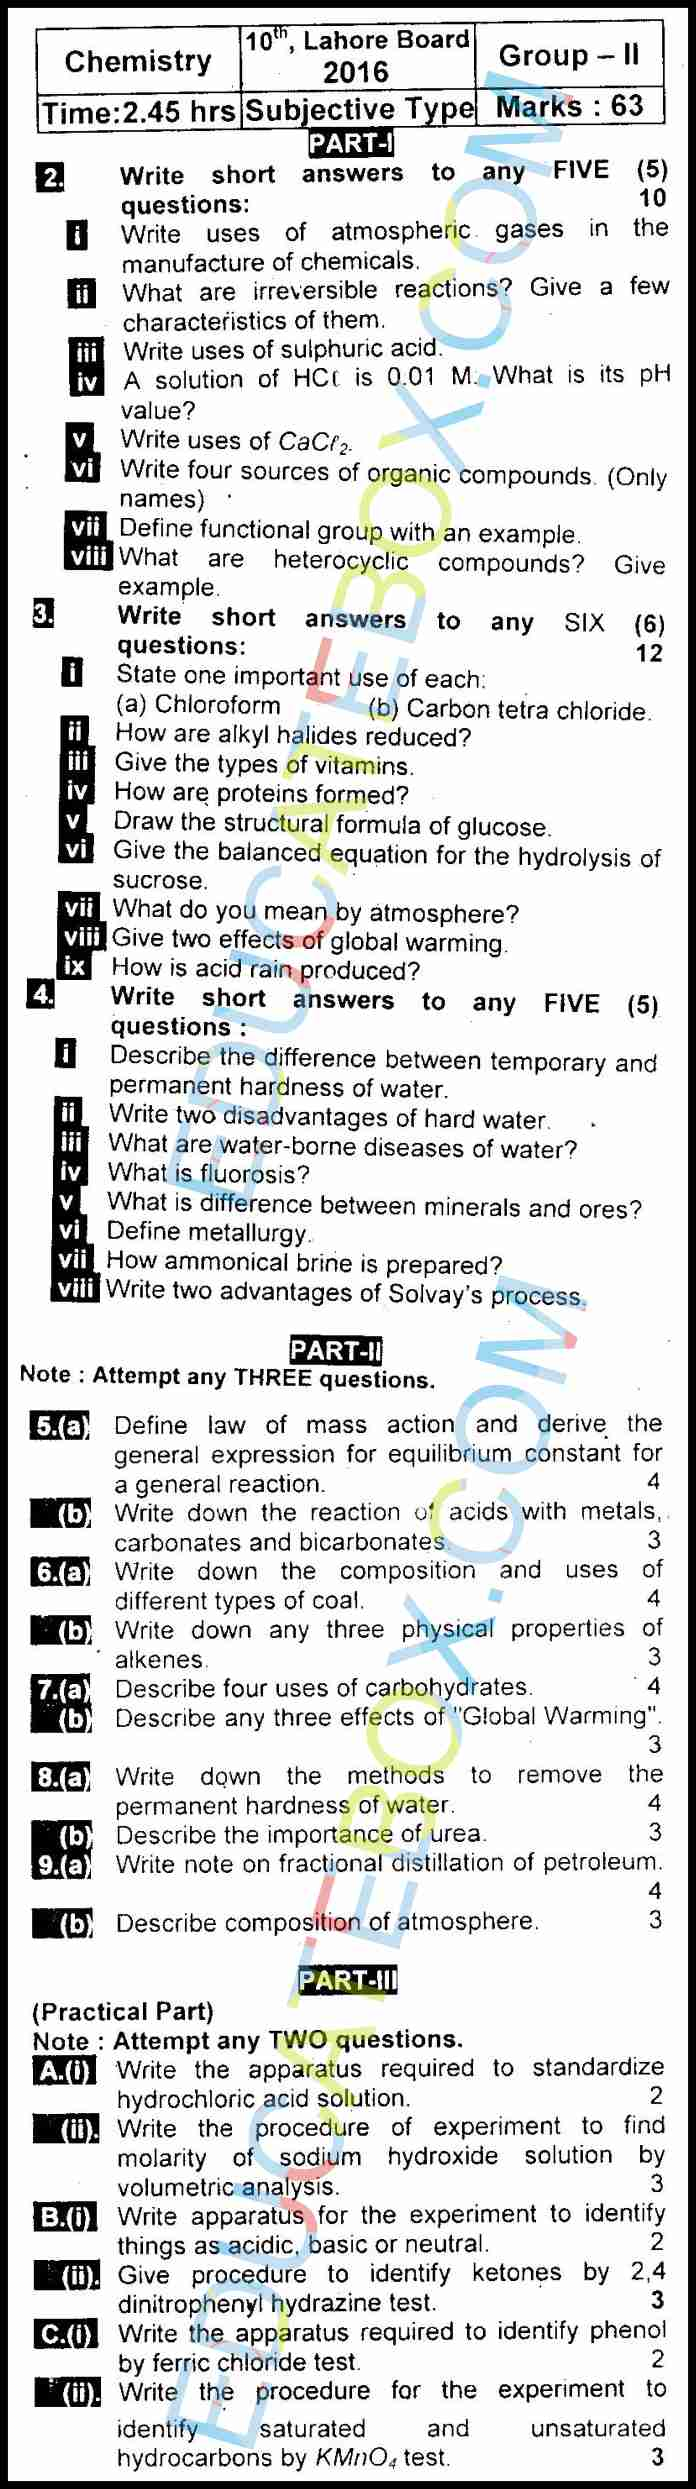 Past Paper Class 10 Chemistry Lahore Board 2016 Subjective Type Group 2